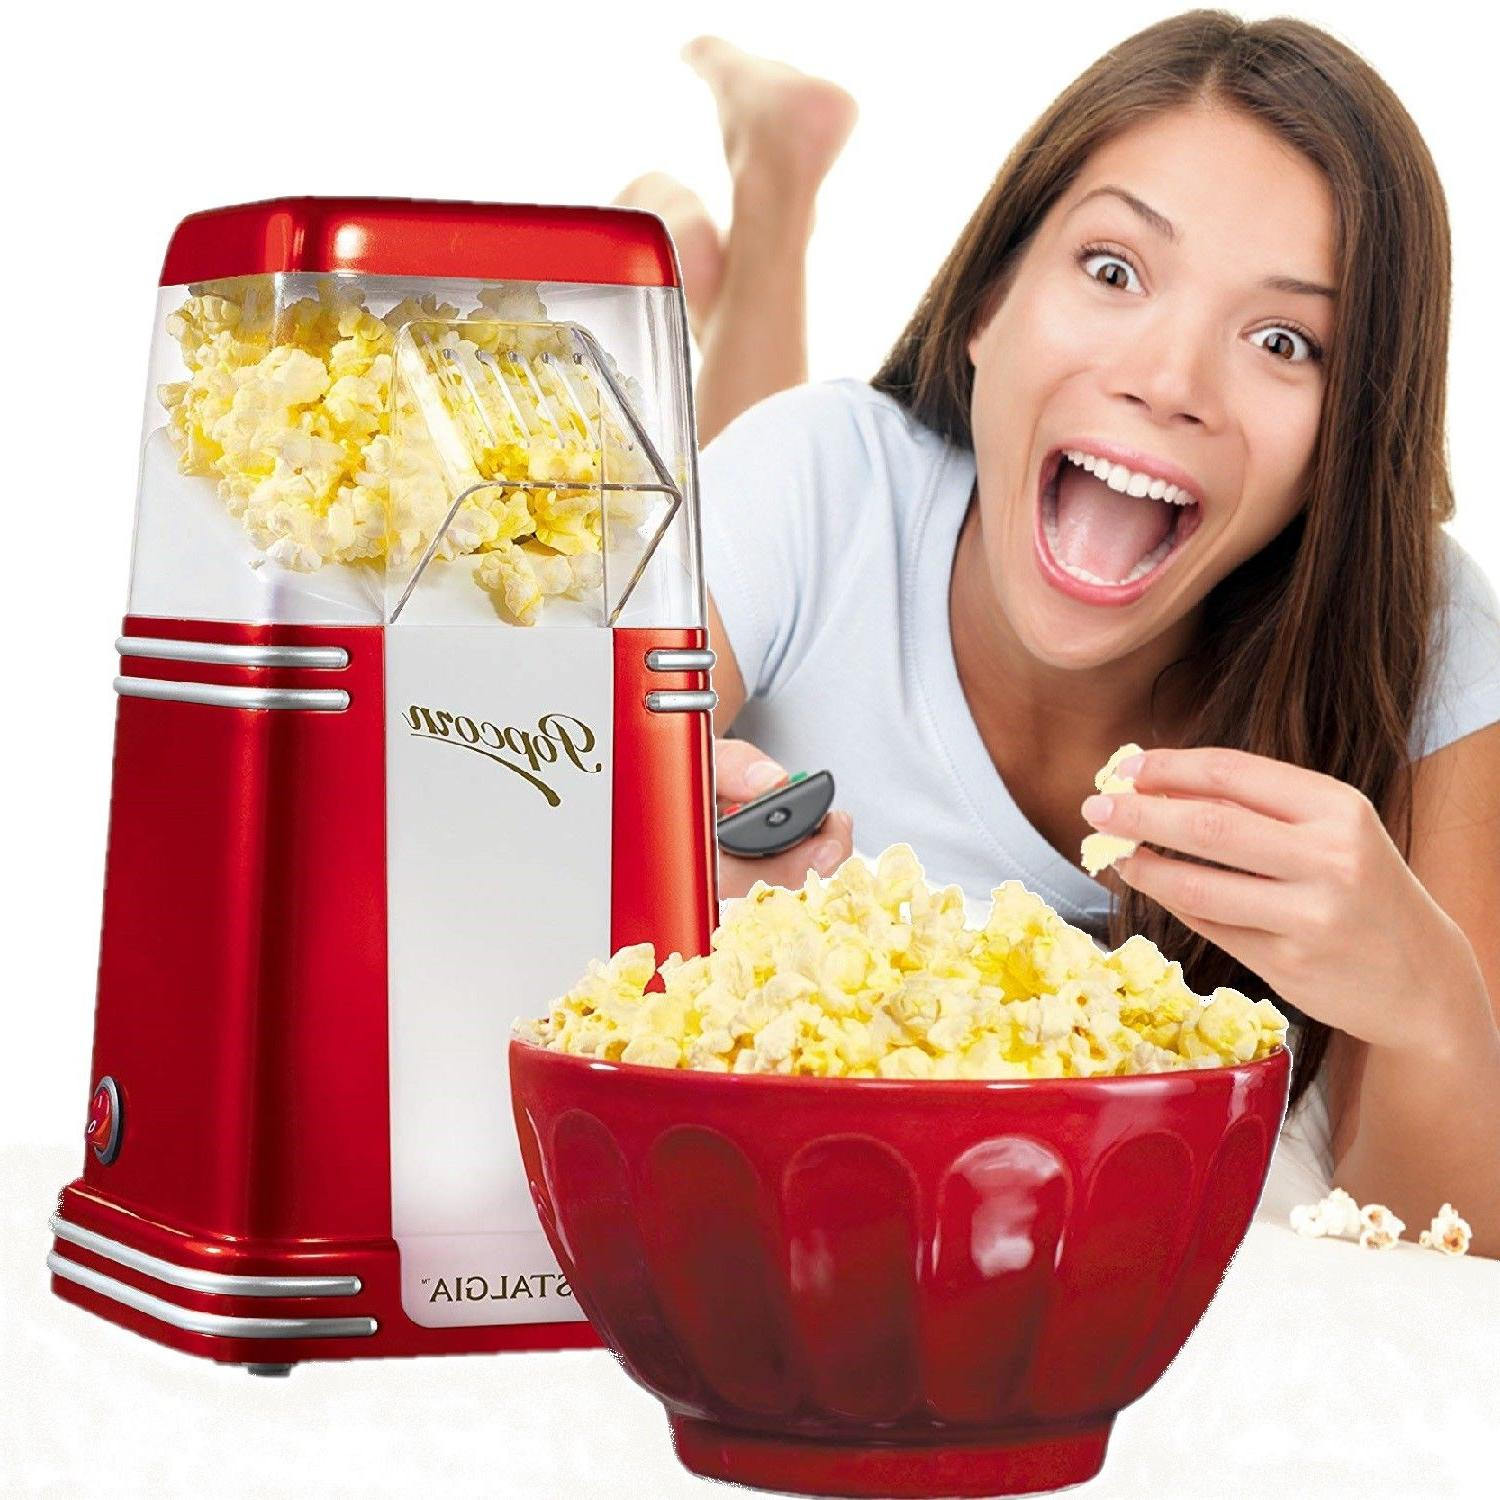 hot air popcorn maker 8 cup oil